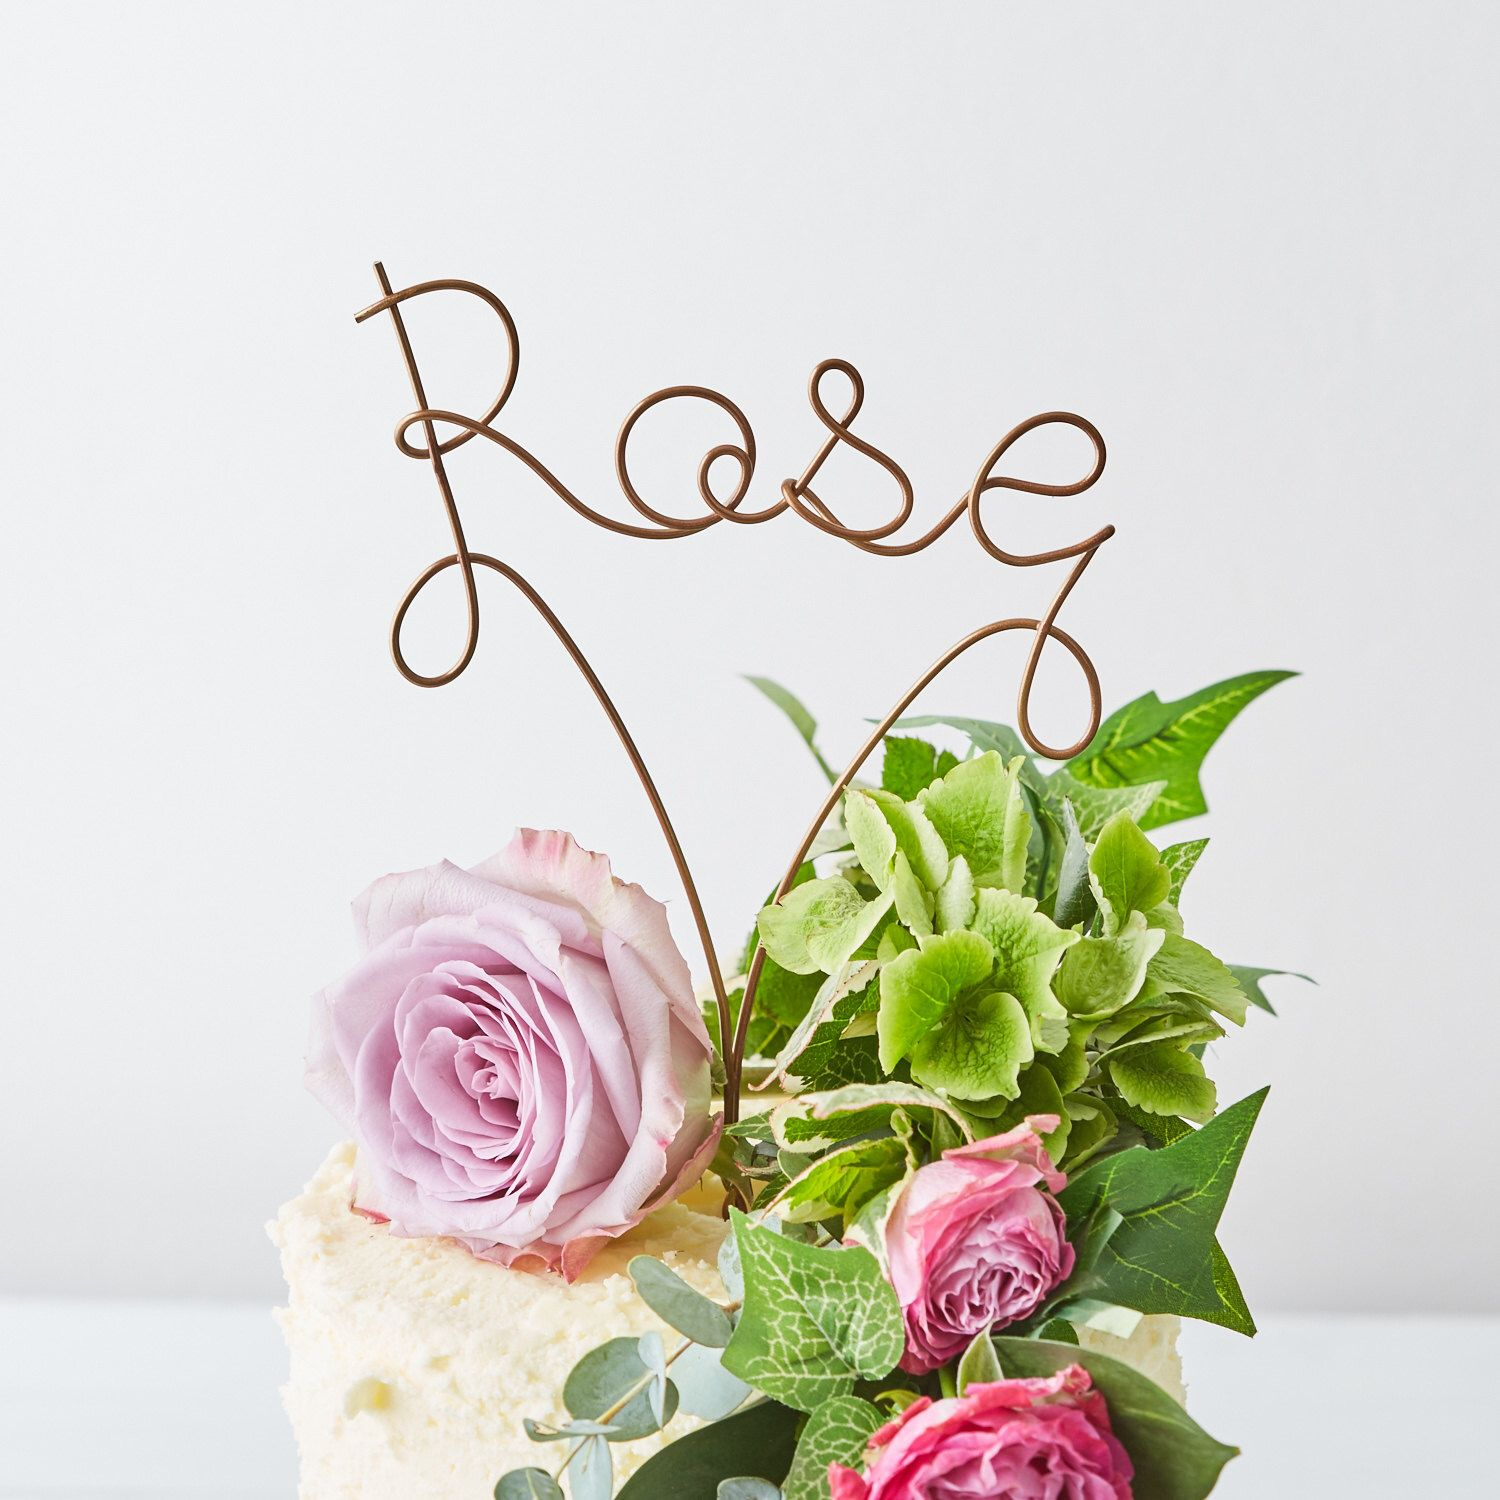 Pin by Hayley Barr on Wire Knot | Pinterest | Cake